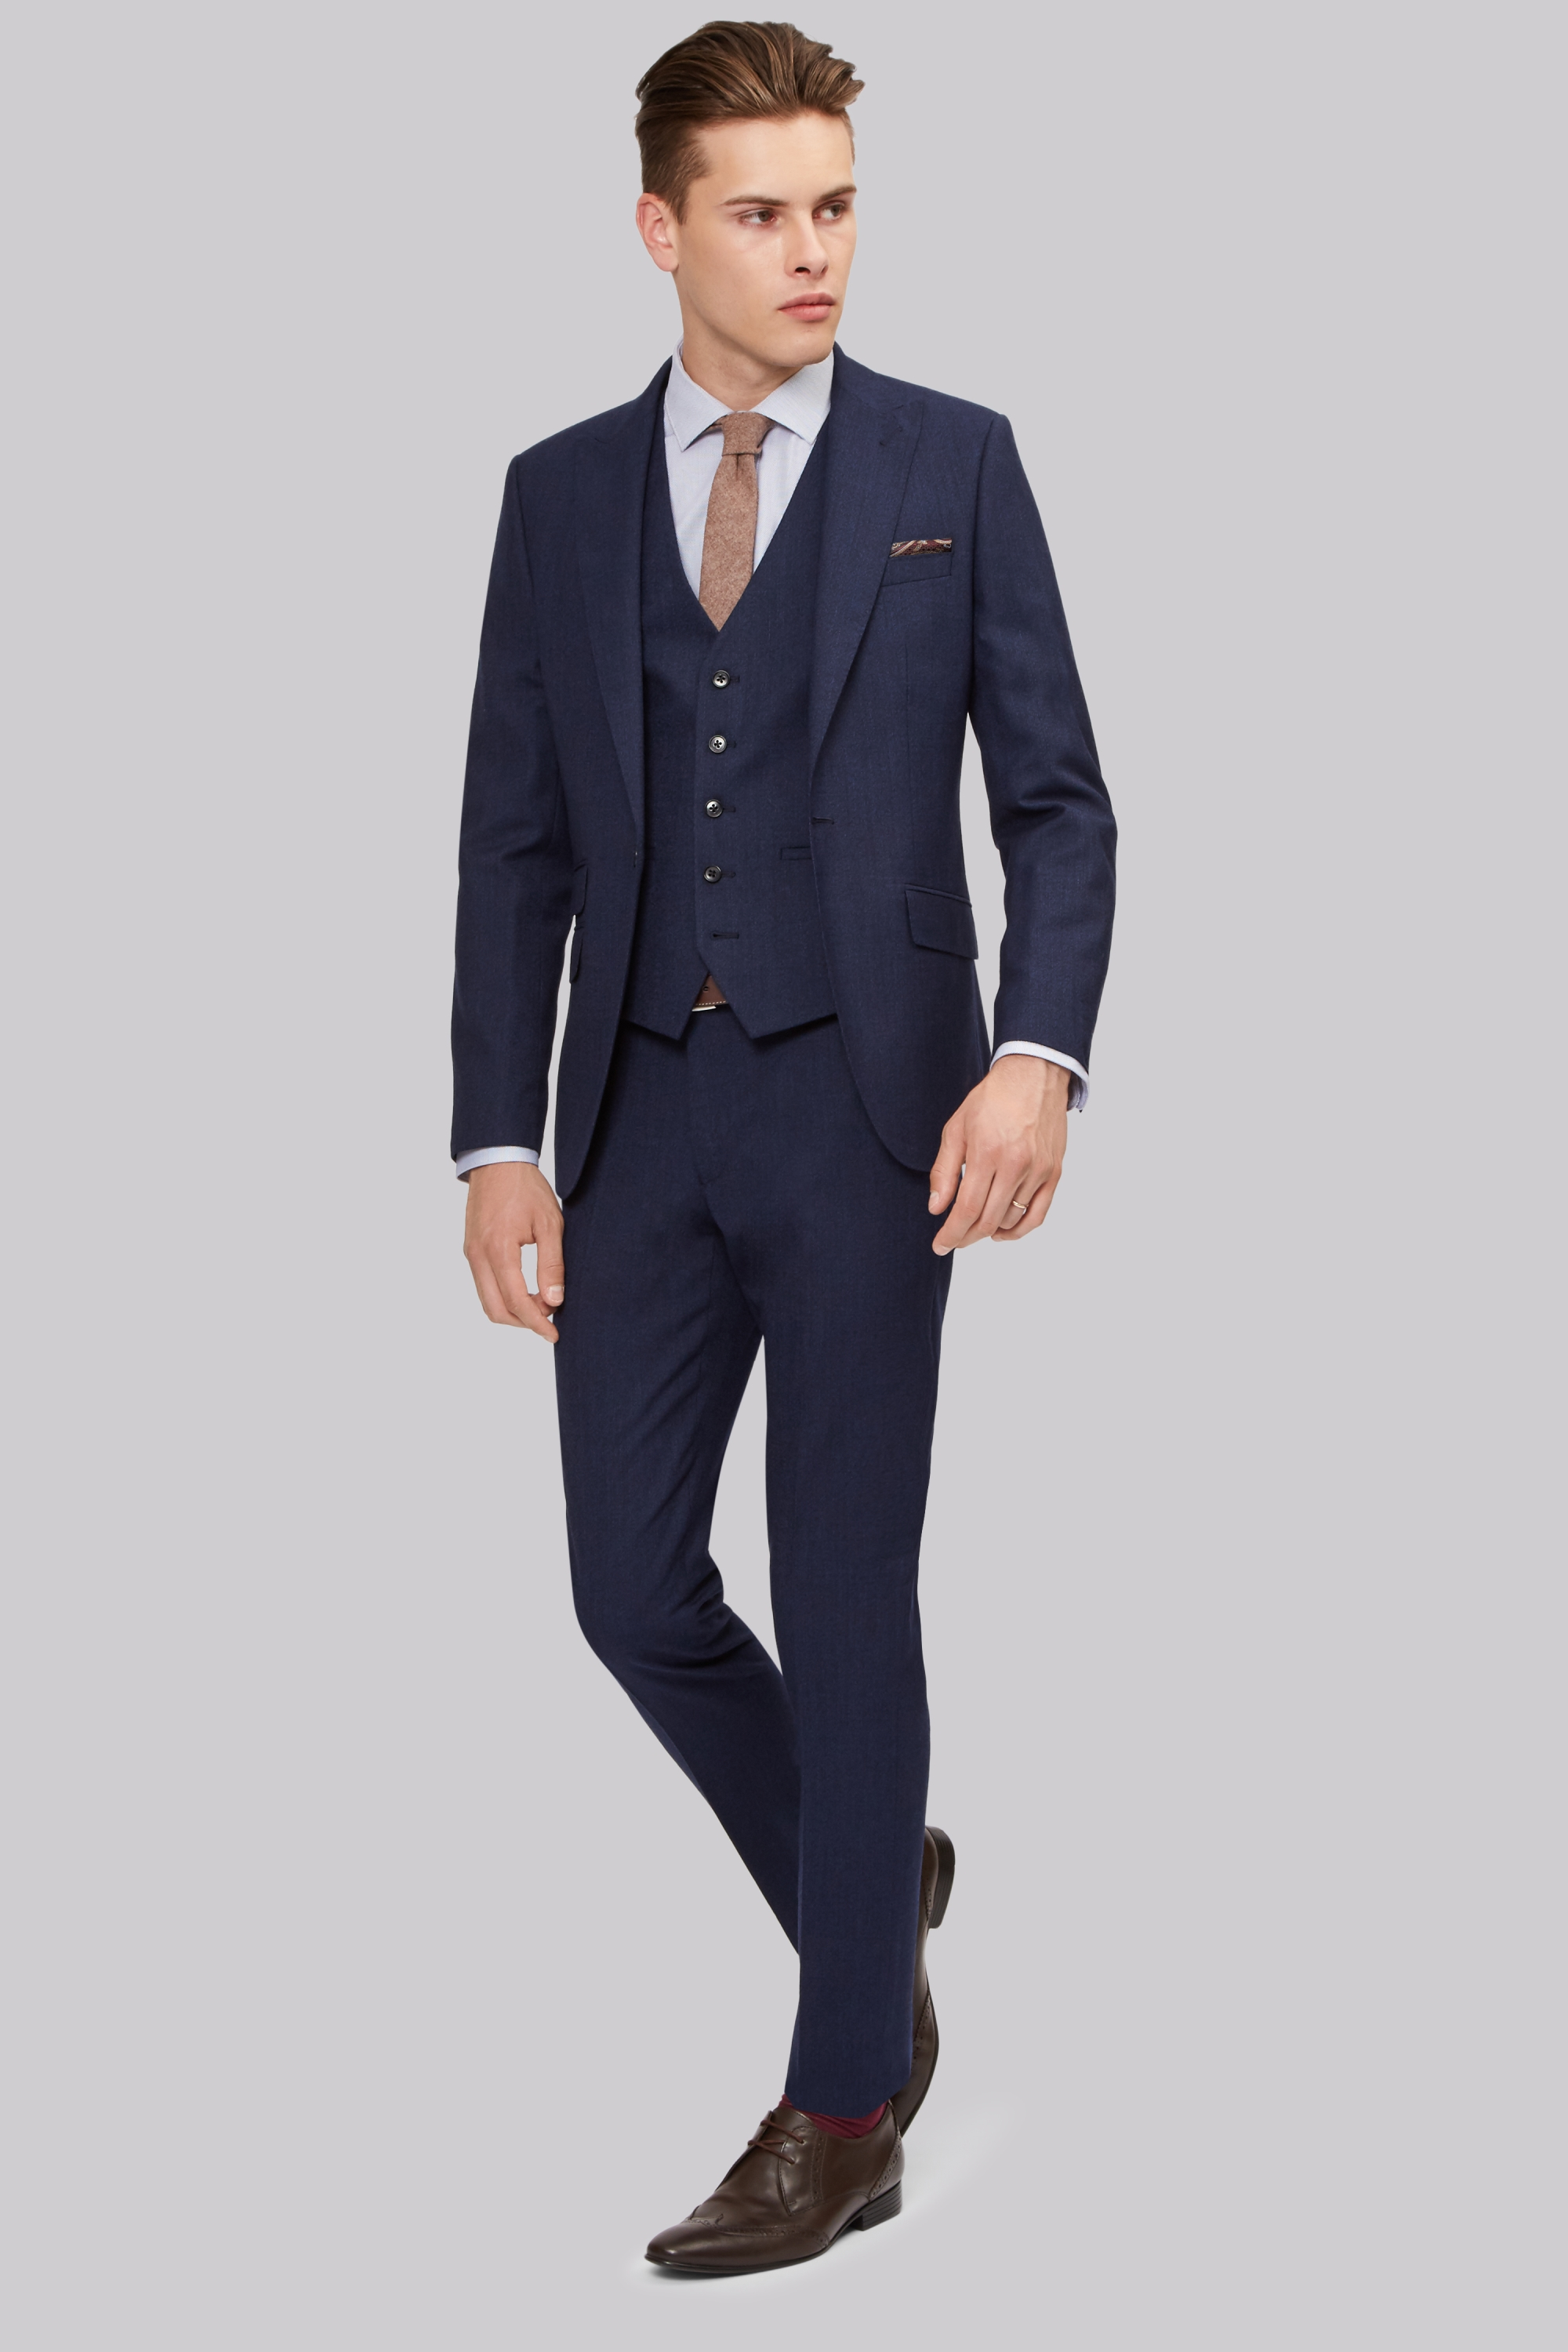 Skinny Fit Suits for Men | Moss Bros